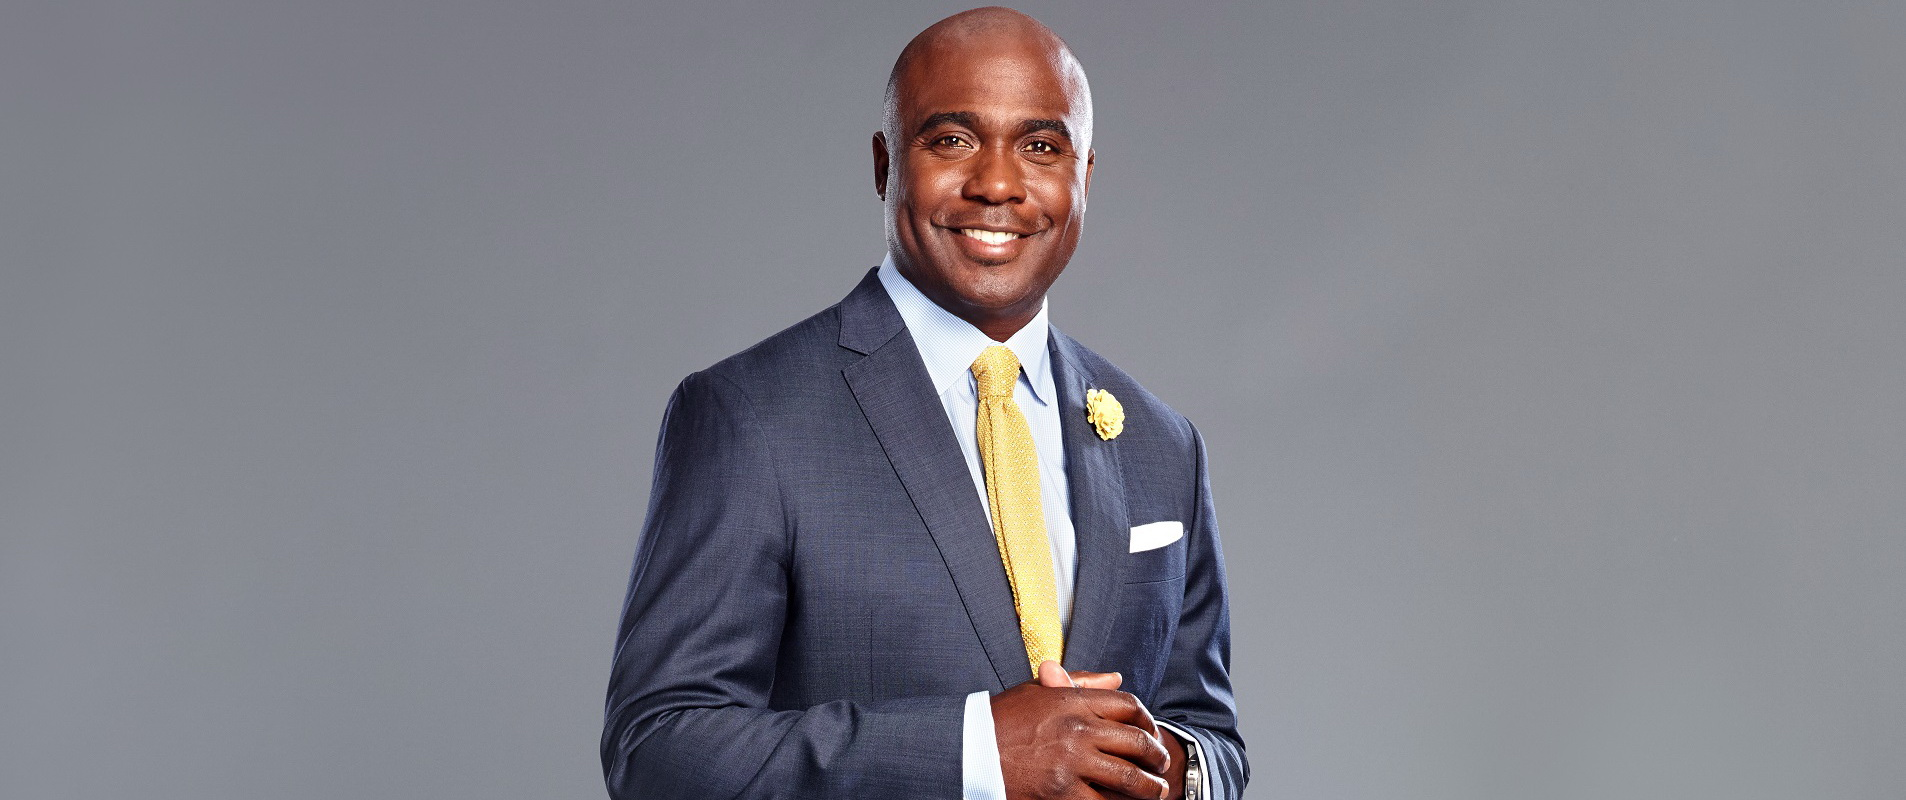 Marshall Faulk Net Worth Salary Income Amp Assets In 2018